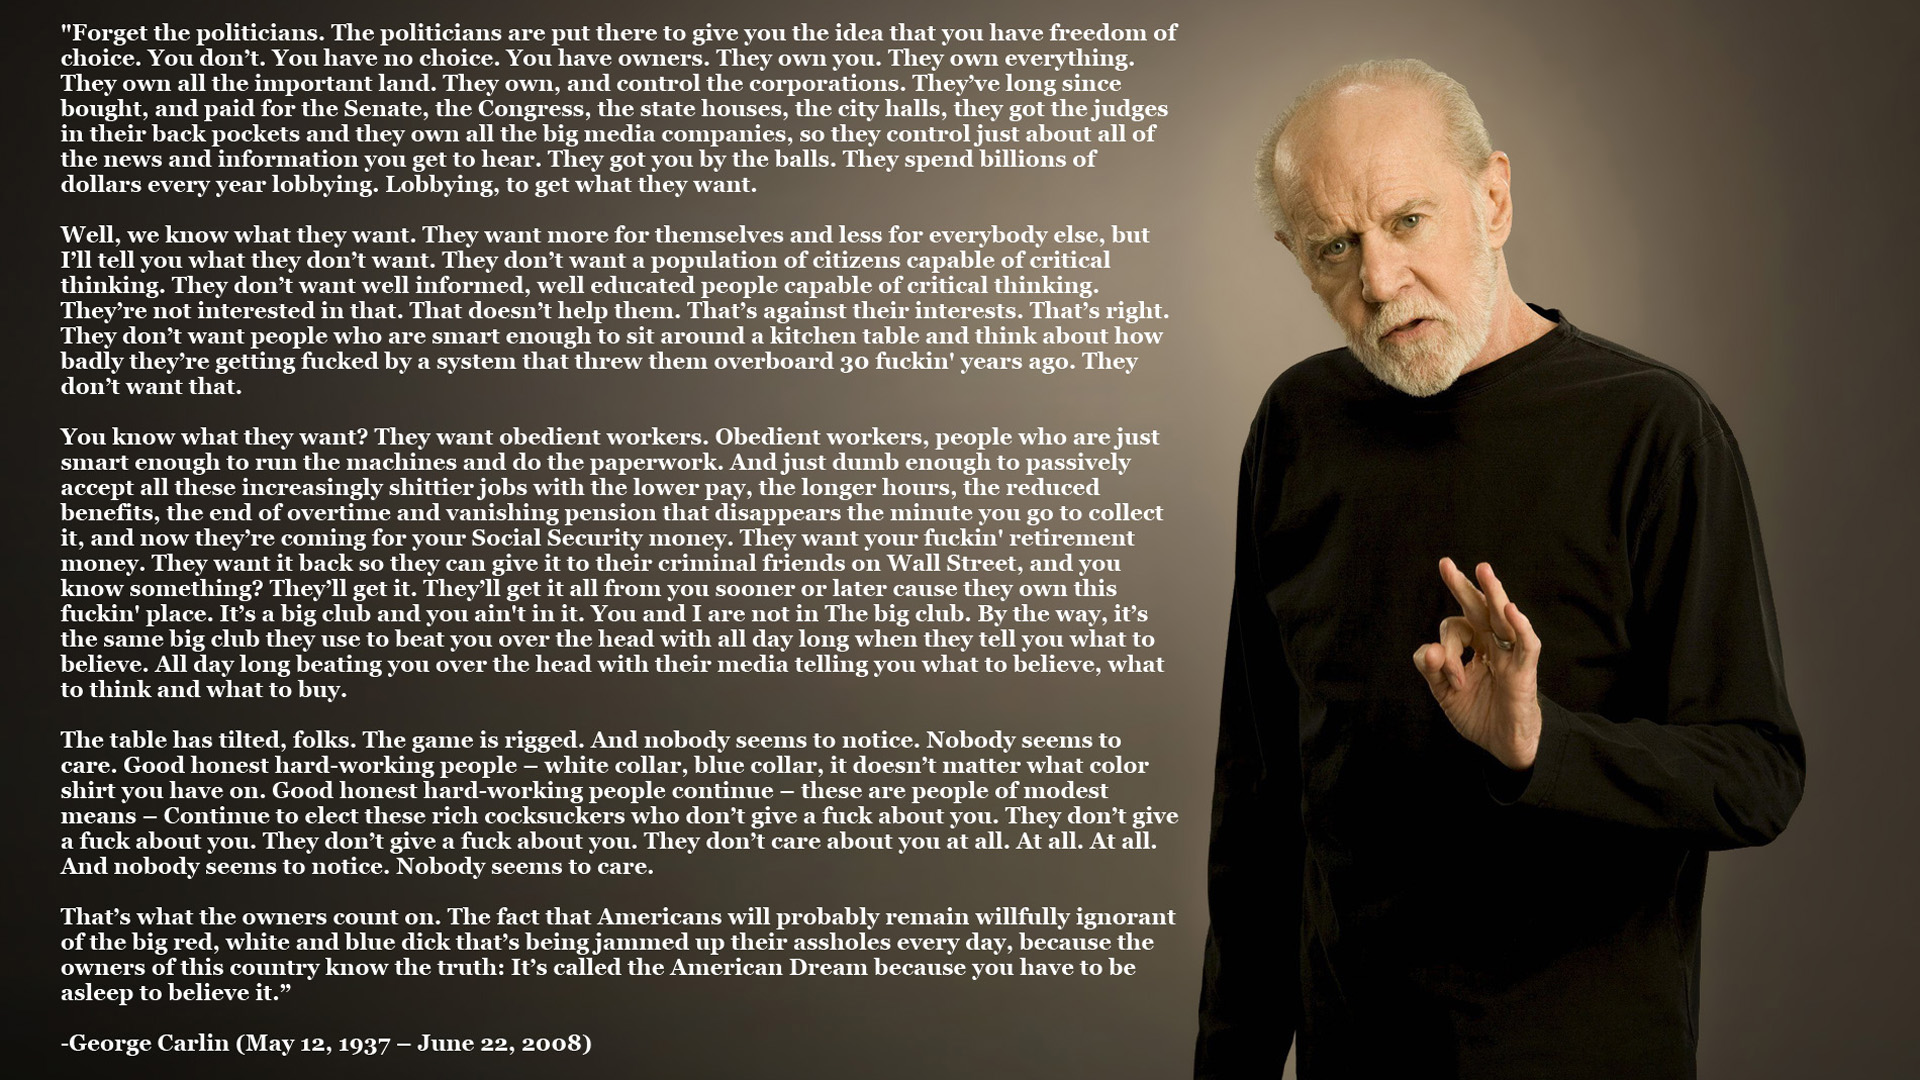 https://i0.wp.com/media.moddb.com/images/groups/1/3/2923/George_Carlin.jpg